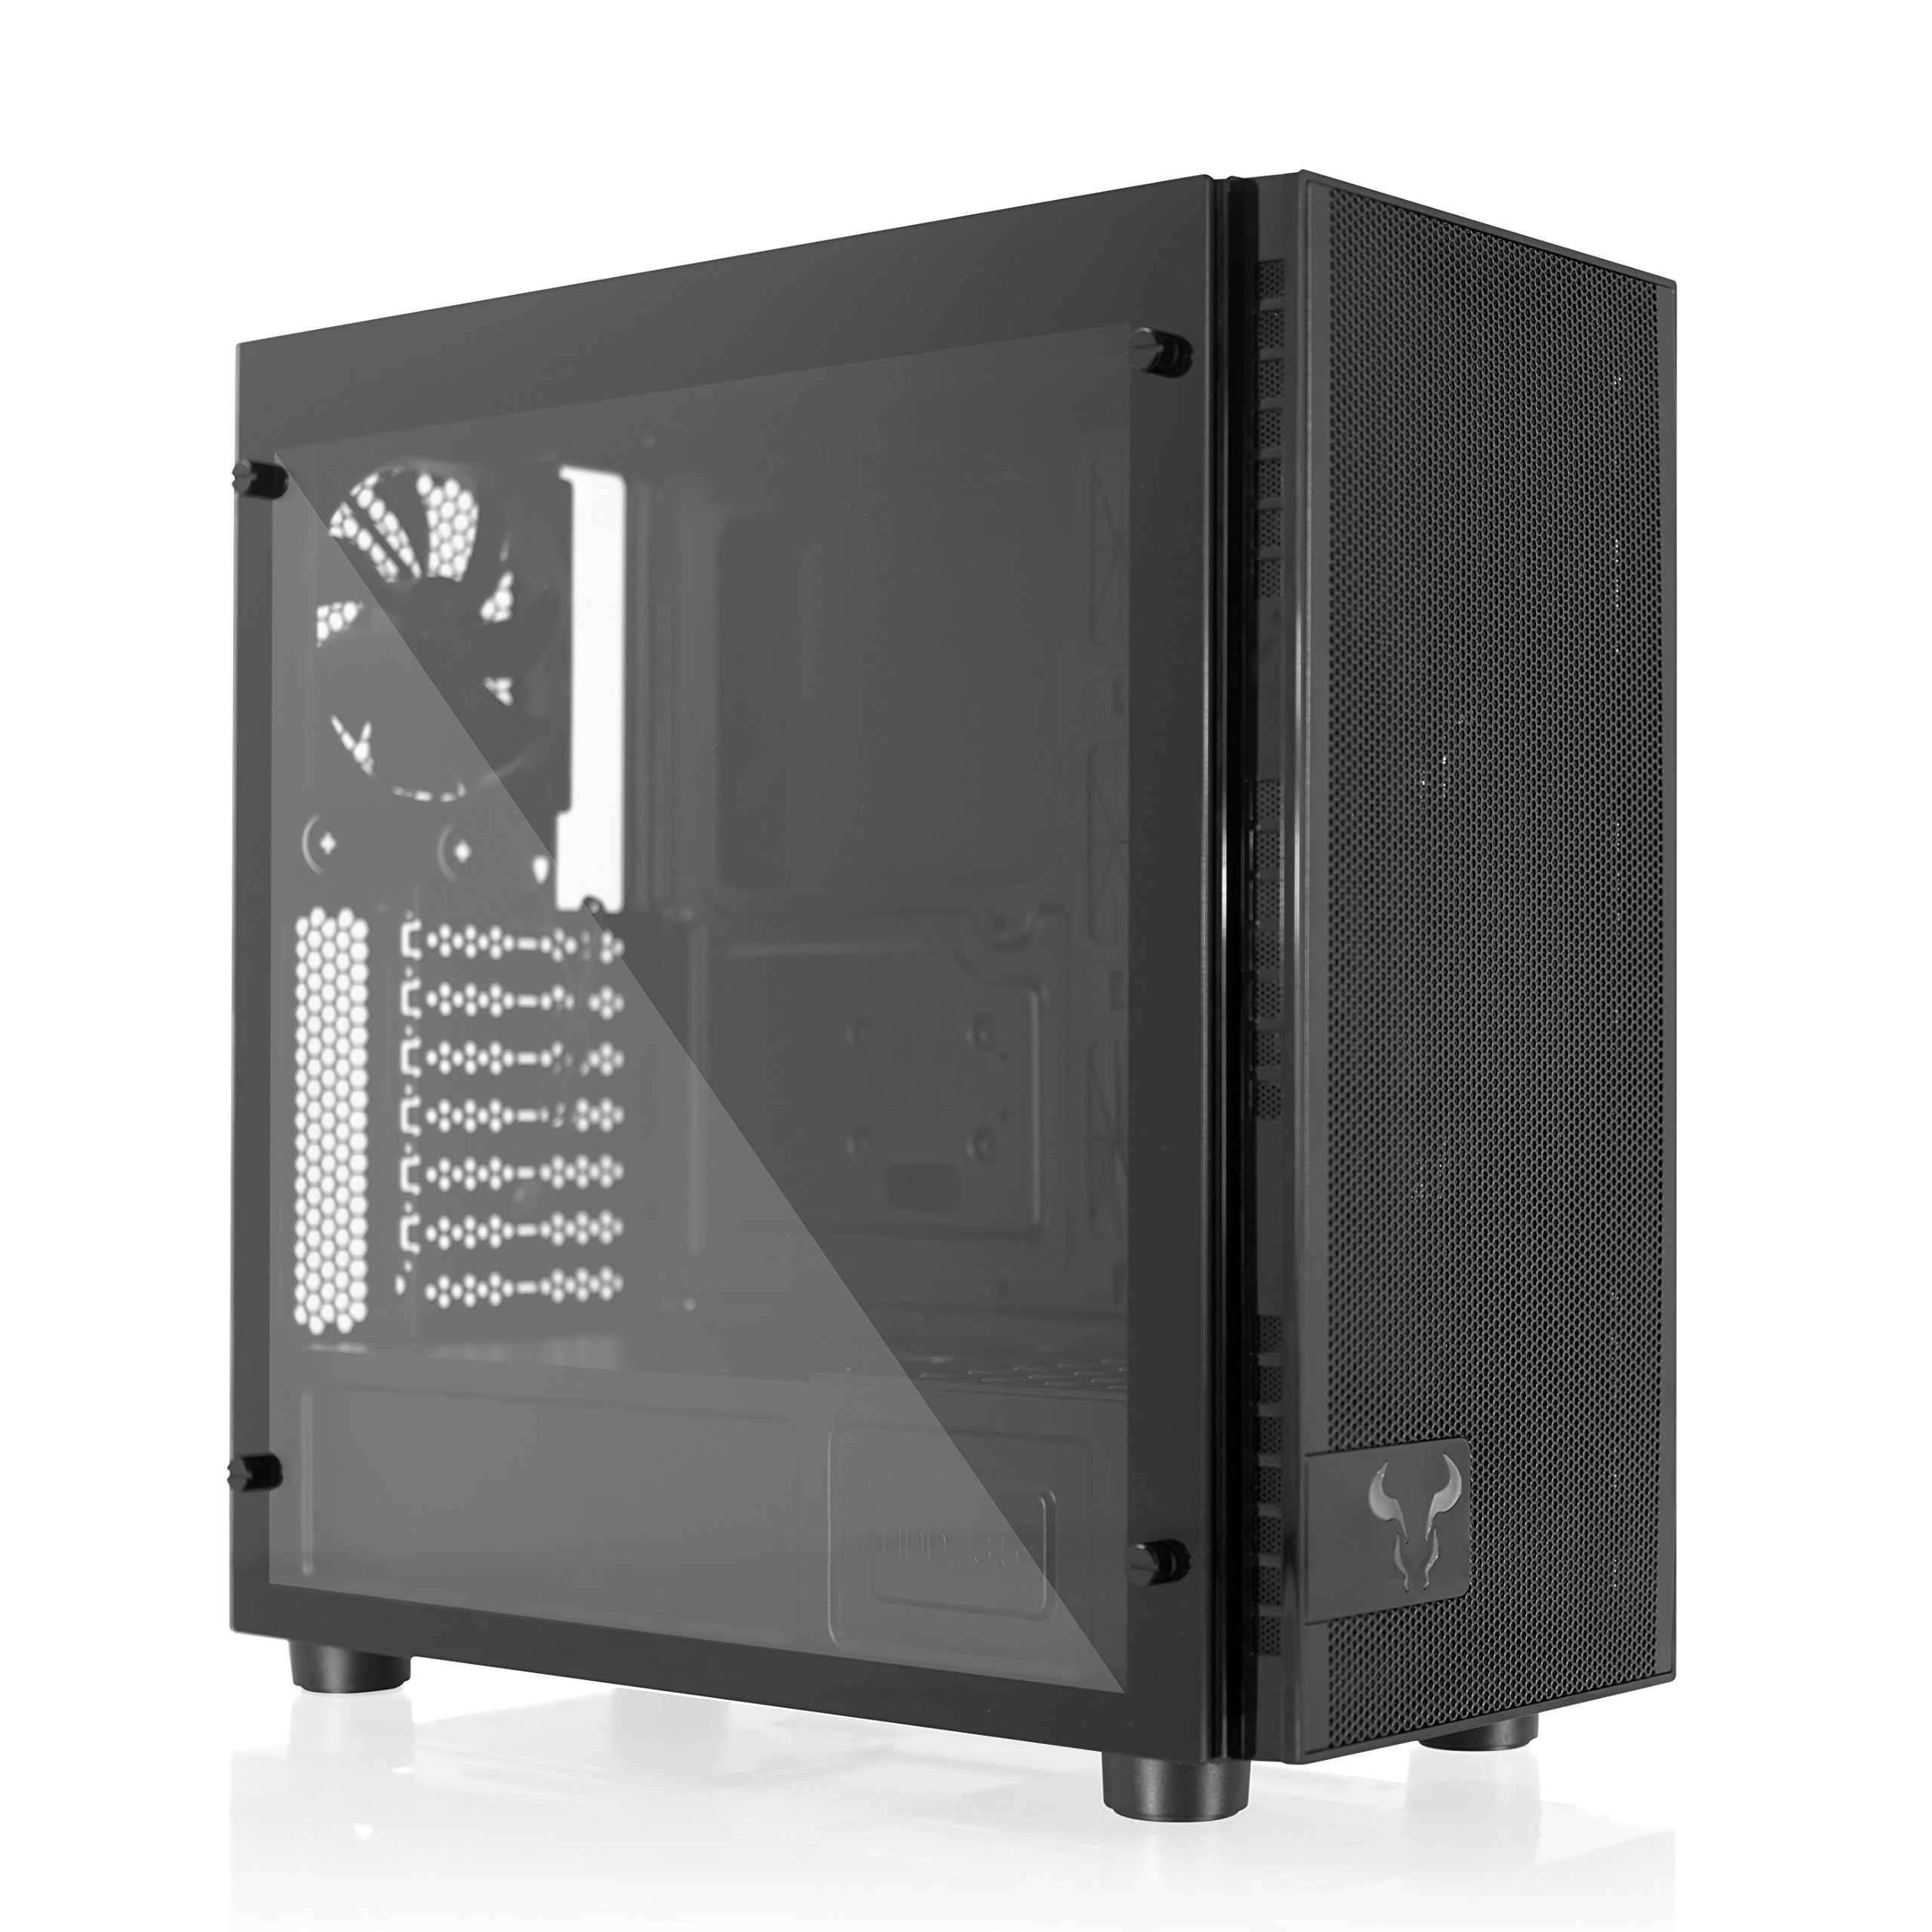 RIOTORO Full Tower, Fully Customizable RGB Color Gaming Case (CR500 - Tempered Glass ATX Mid Tower) by RIOTORO